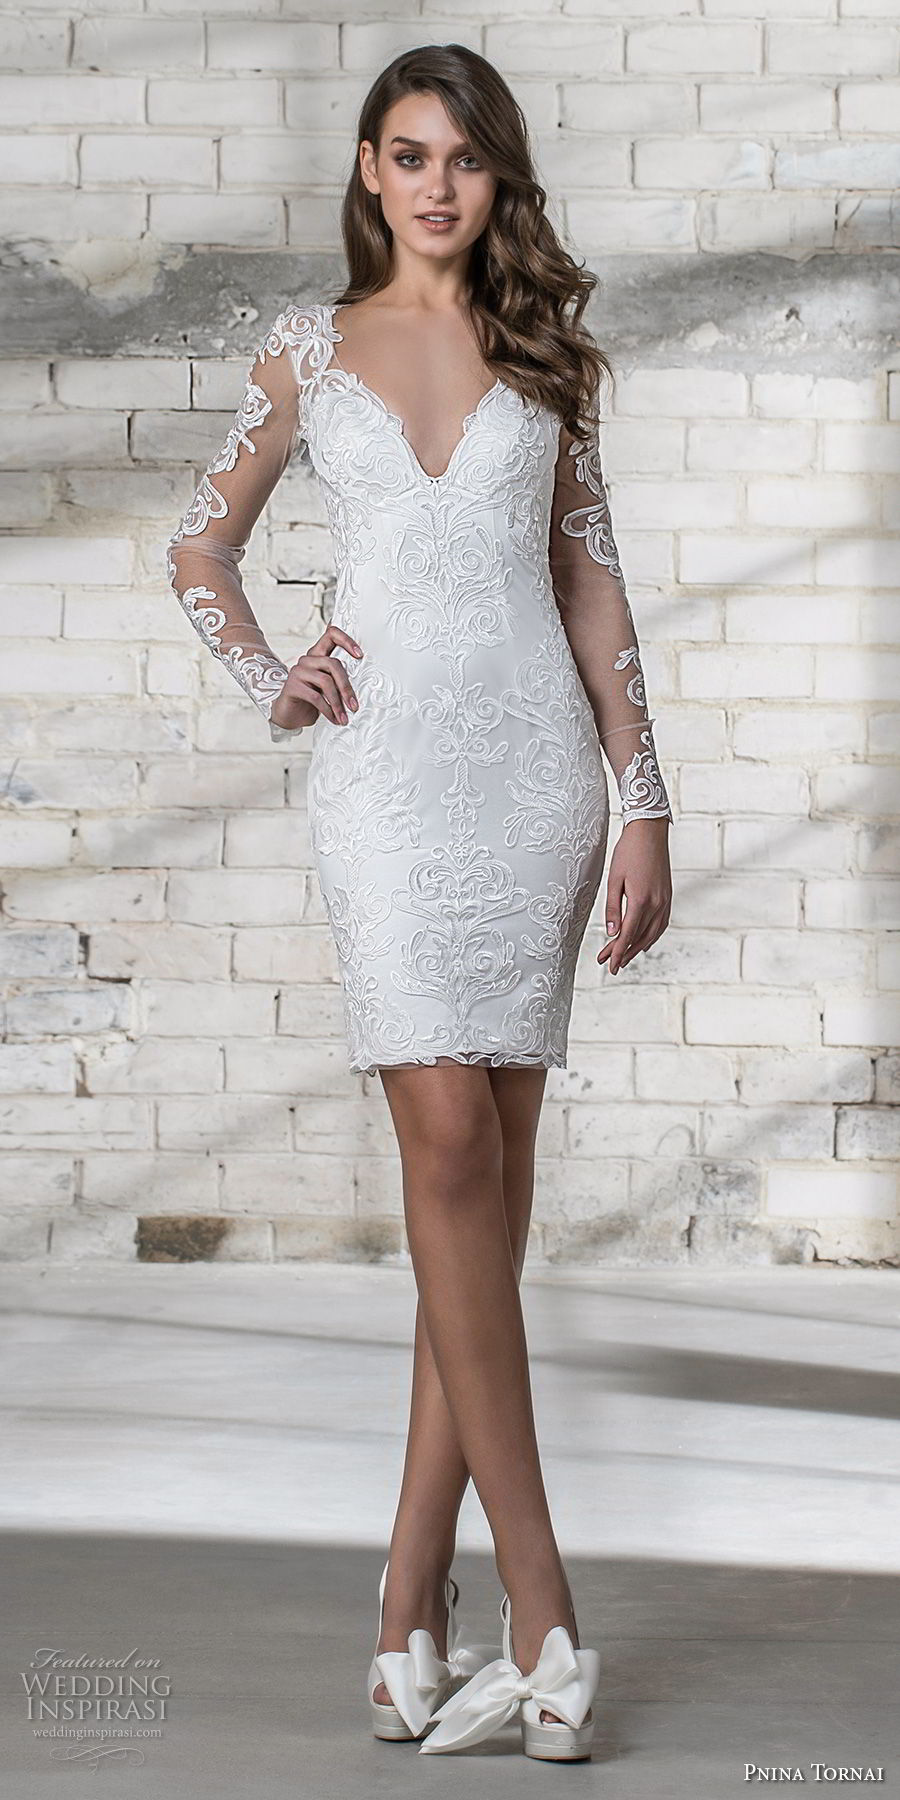 pnina tornai 2019 love bridal long sleeves v neck full embellishment modern romantic above the knee short wedding dress miniskirt keyhole back (12) mv